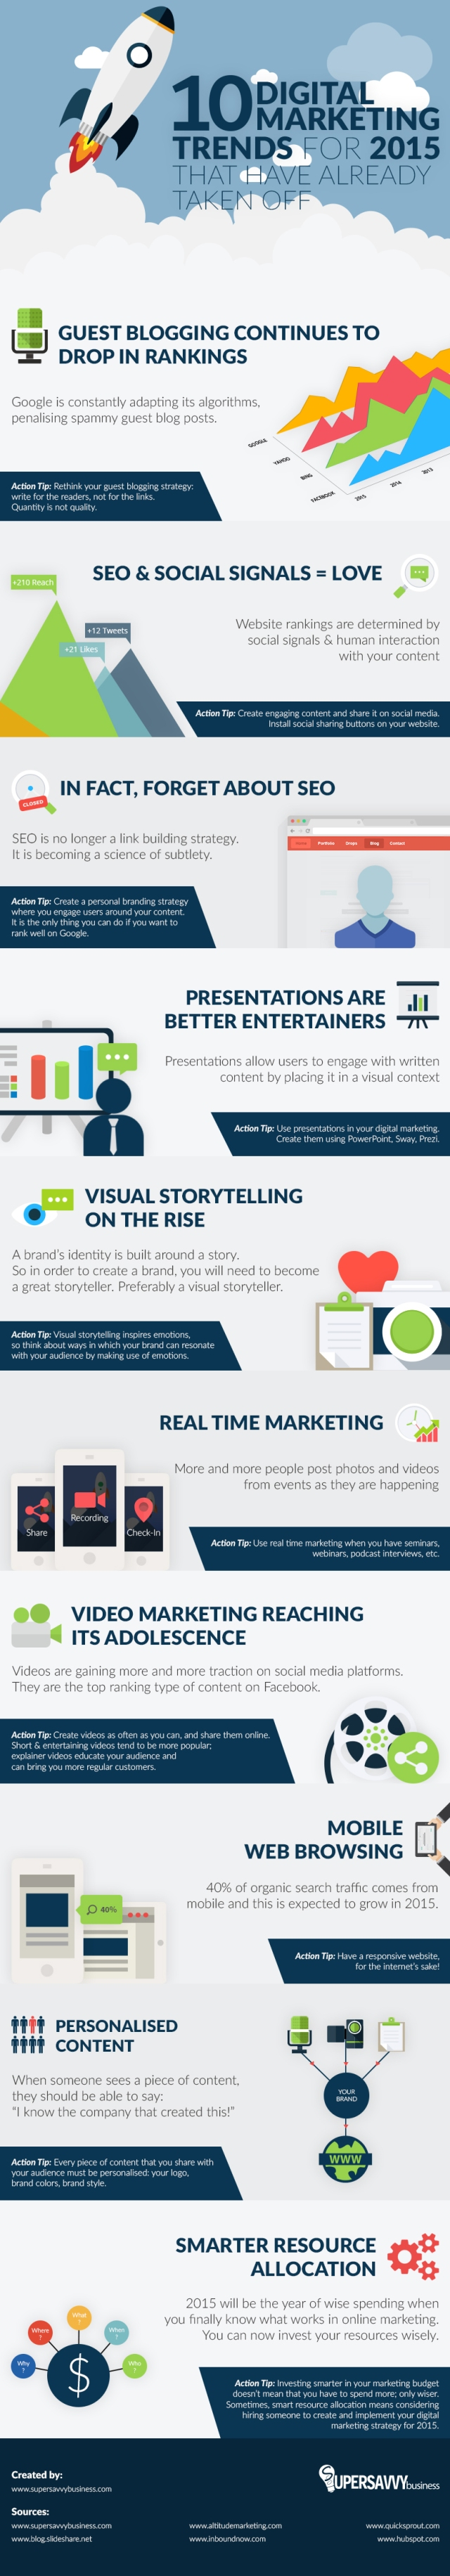 10 Digital Marketing Trends You Need to Know to Achieve Success